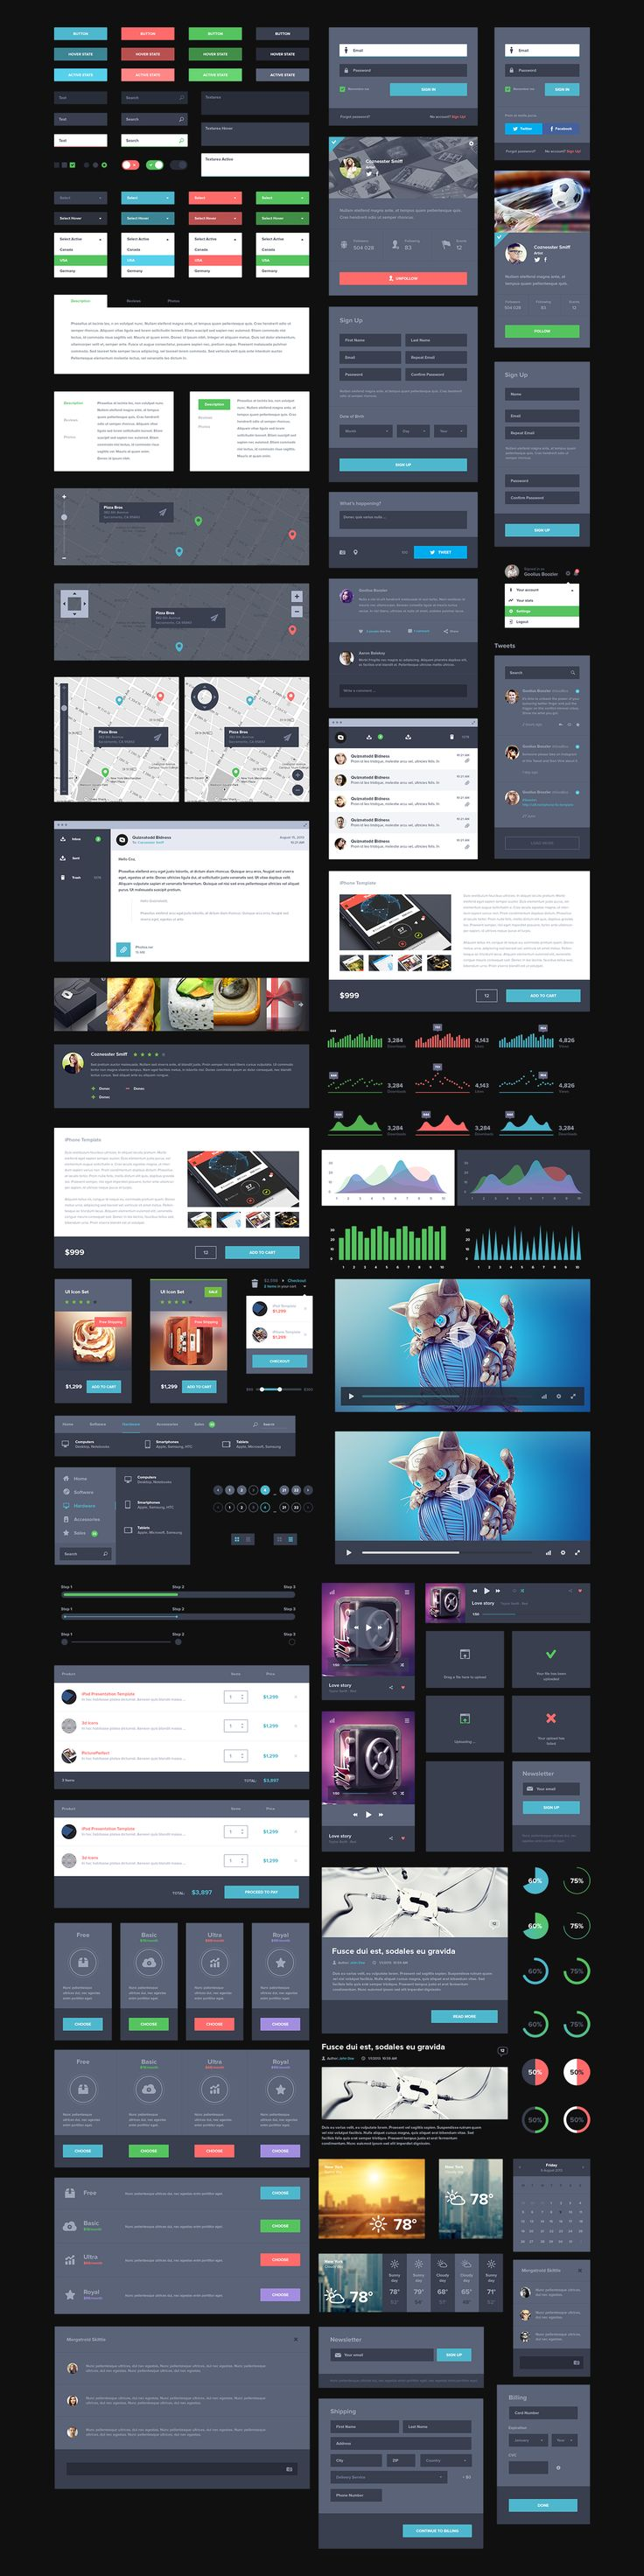 Weekly Free Resources for Designers and Developers [March 24,2014]